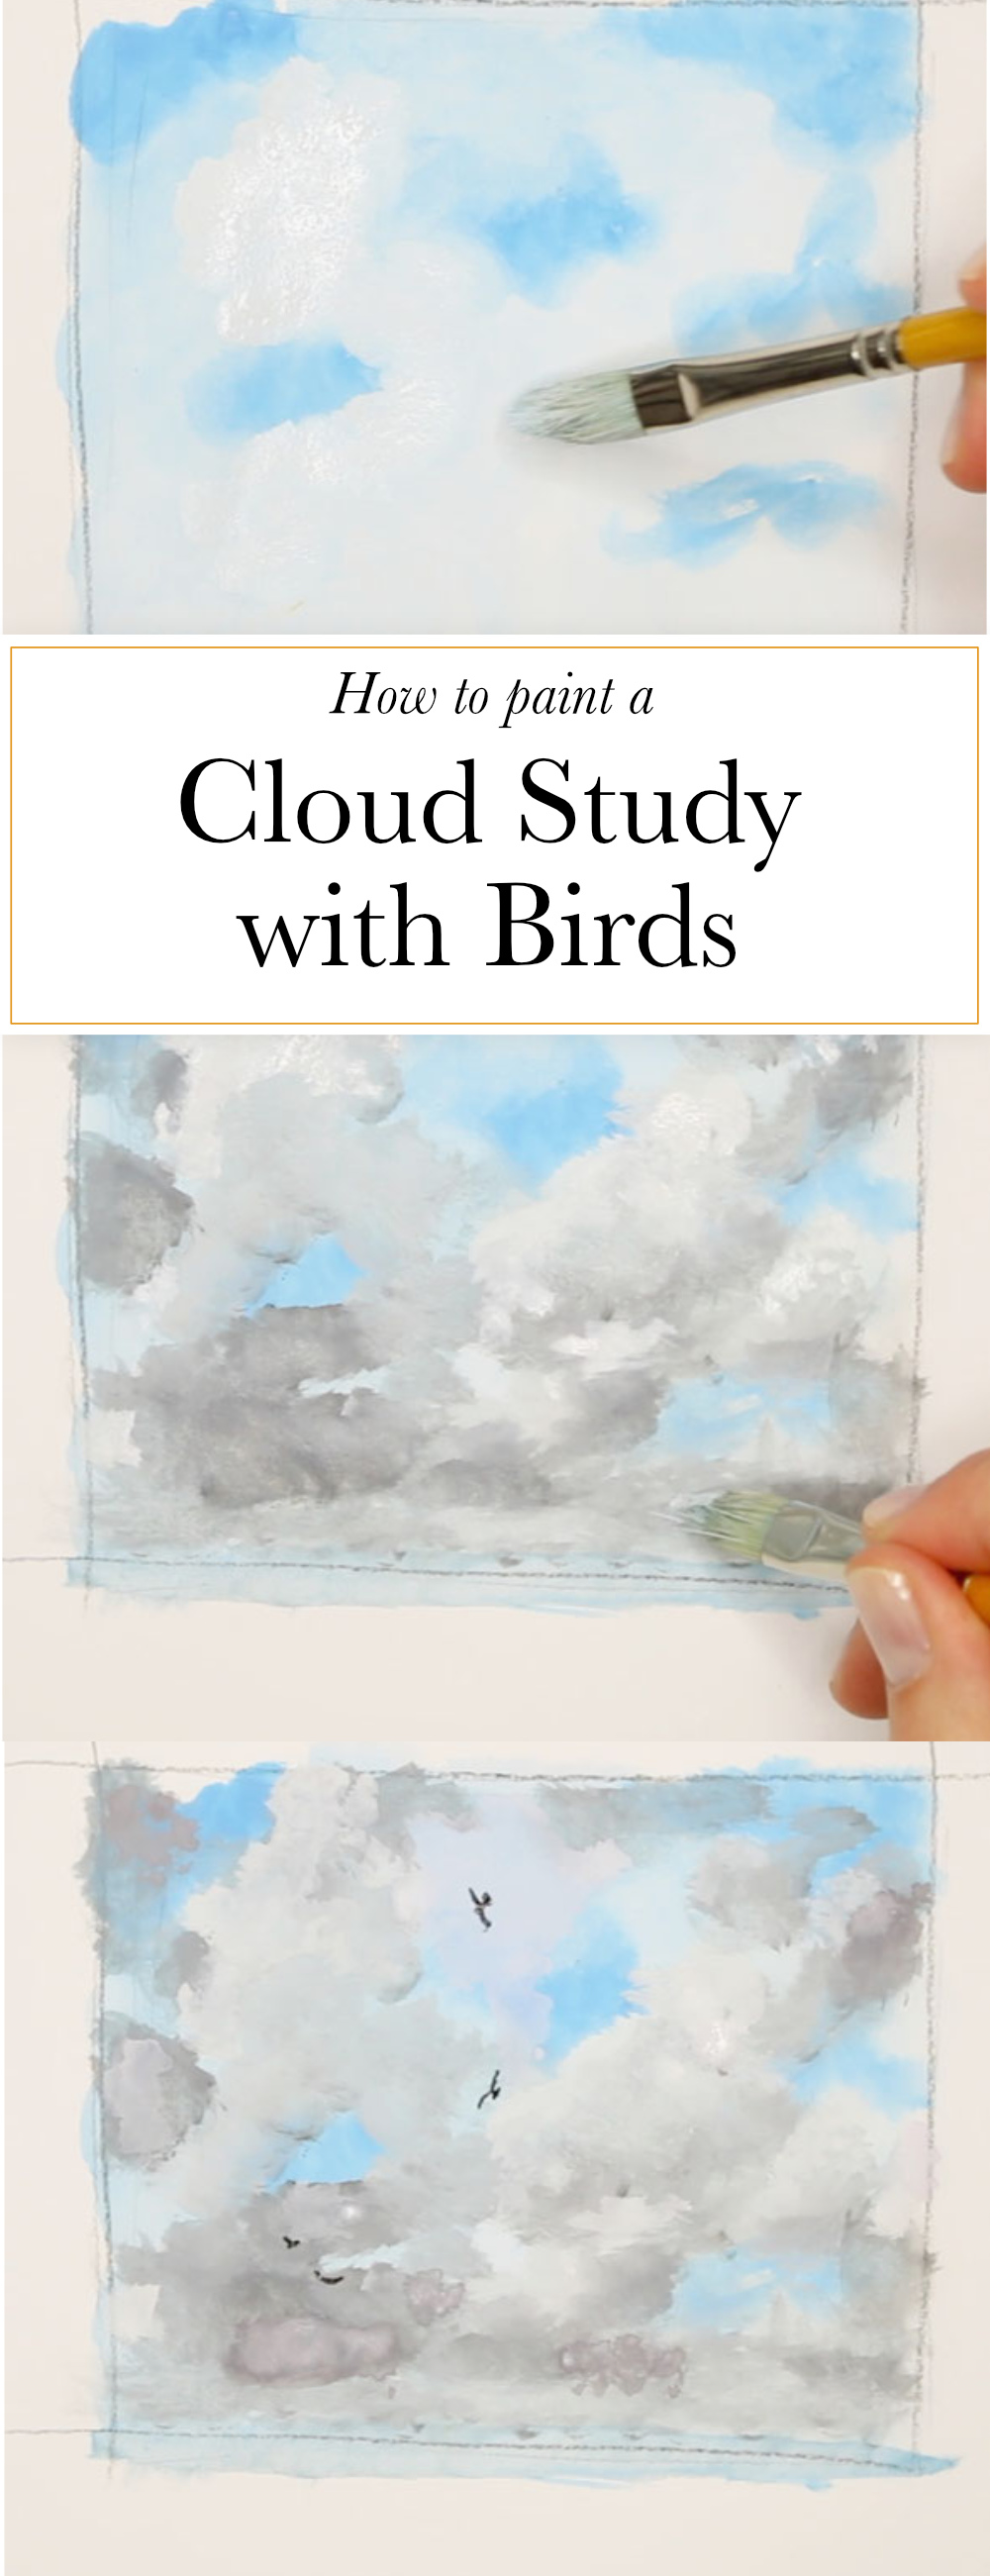 How to paint a cloud study with birds  | The Daily Atelier